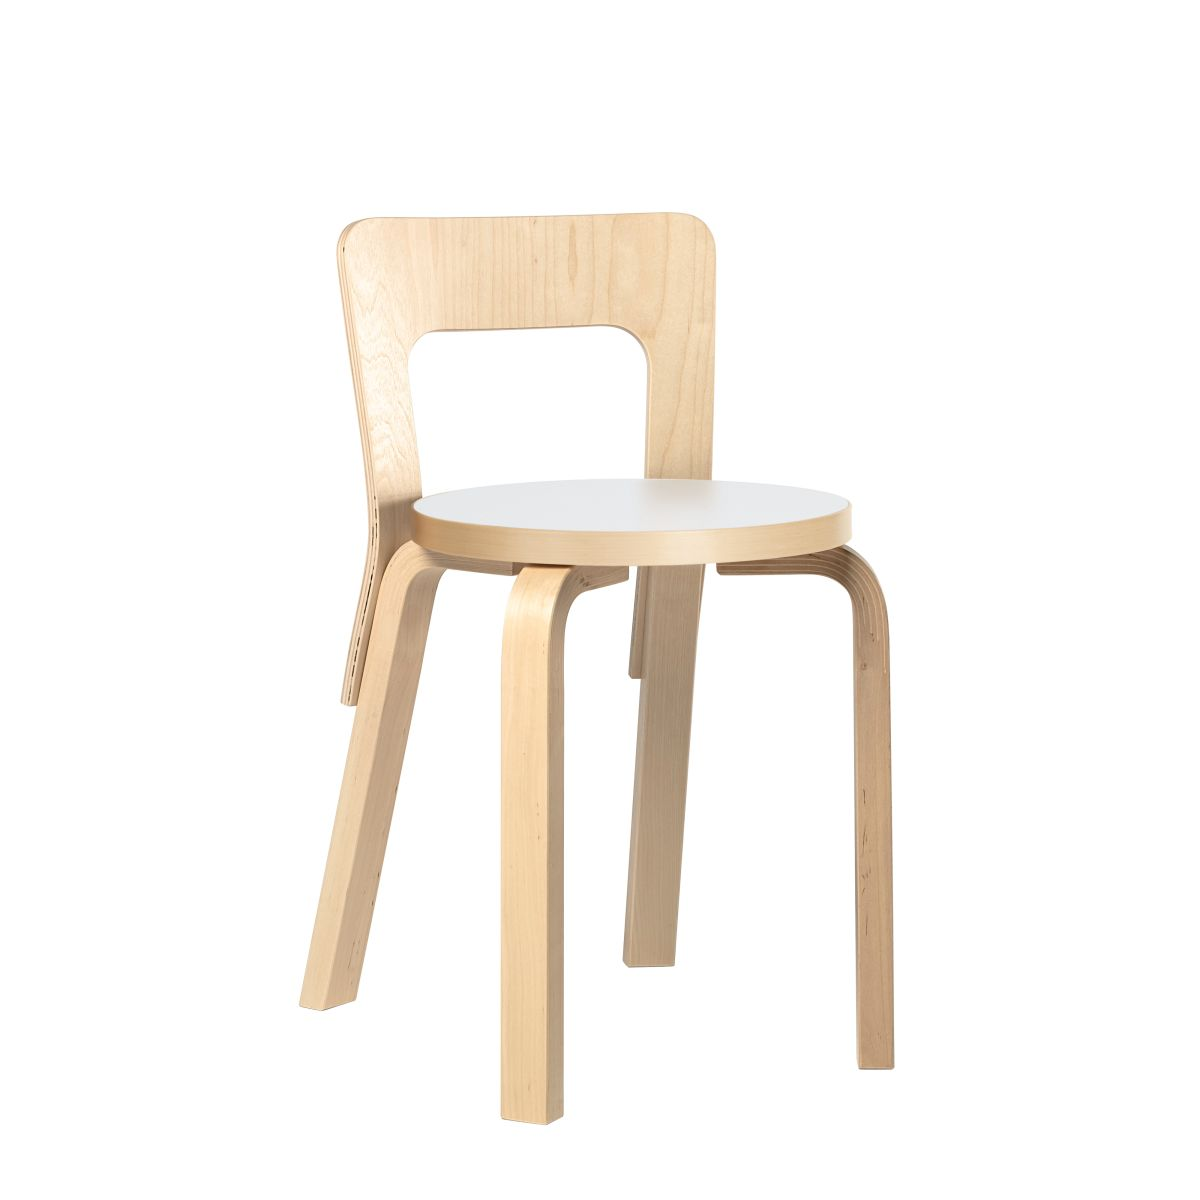 Chair 65 legs birch_Top white HPL